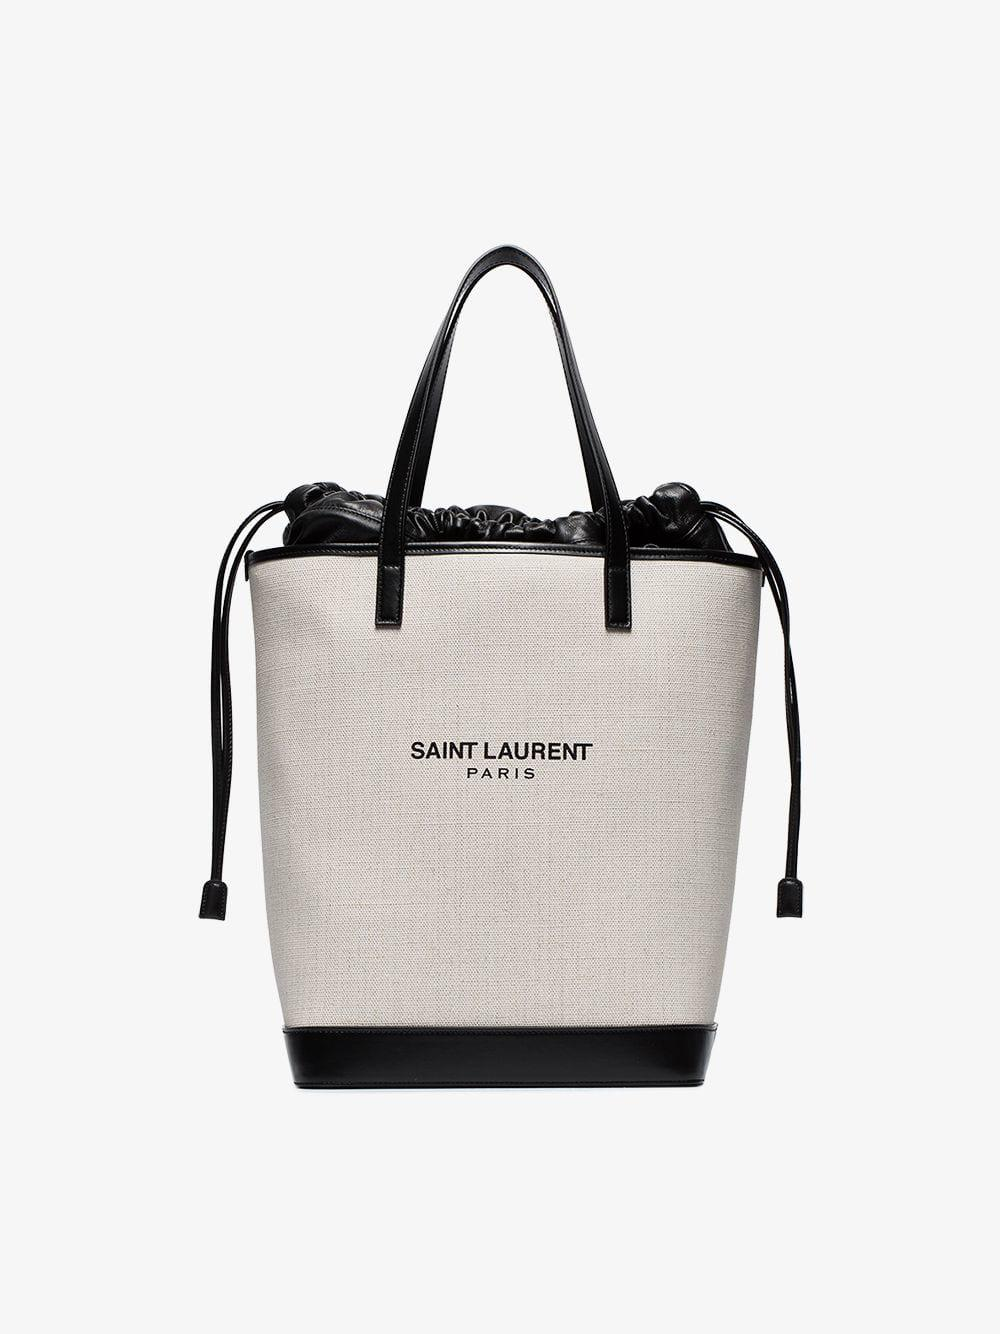 319271d3d3394 Lyst - Saint Laurent White And Black Teddy Canvas Bag in White ...